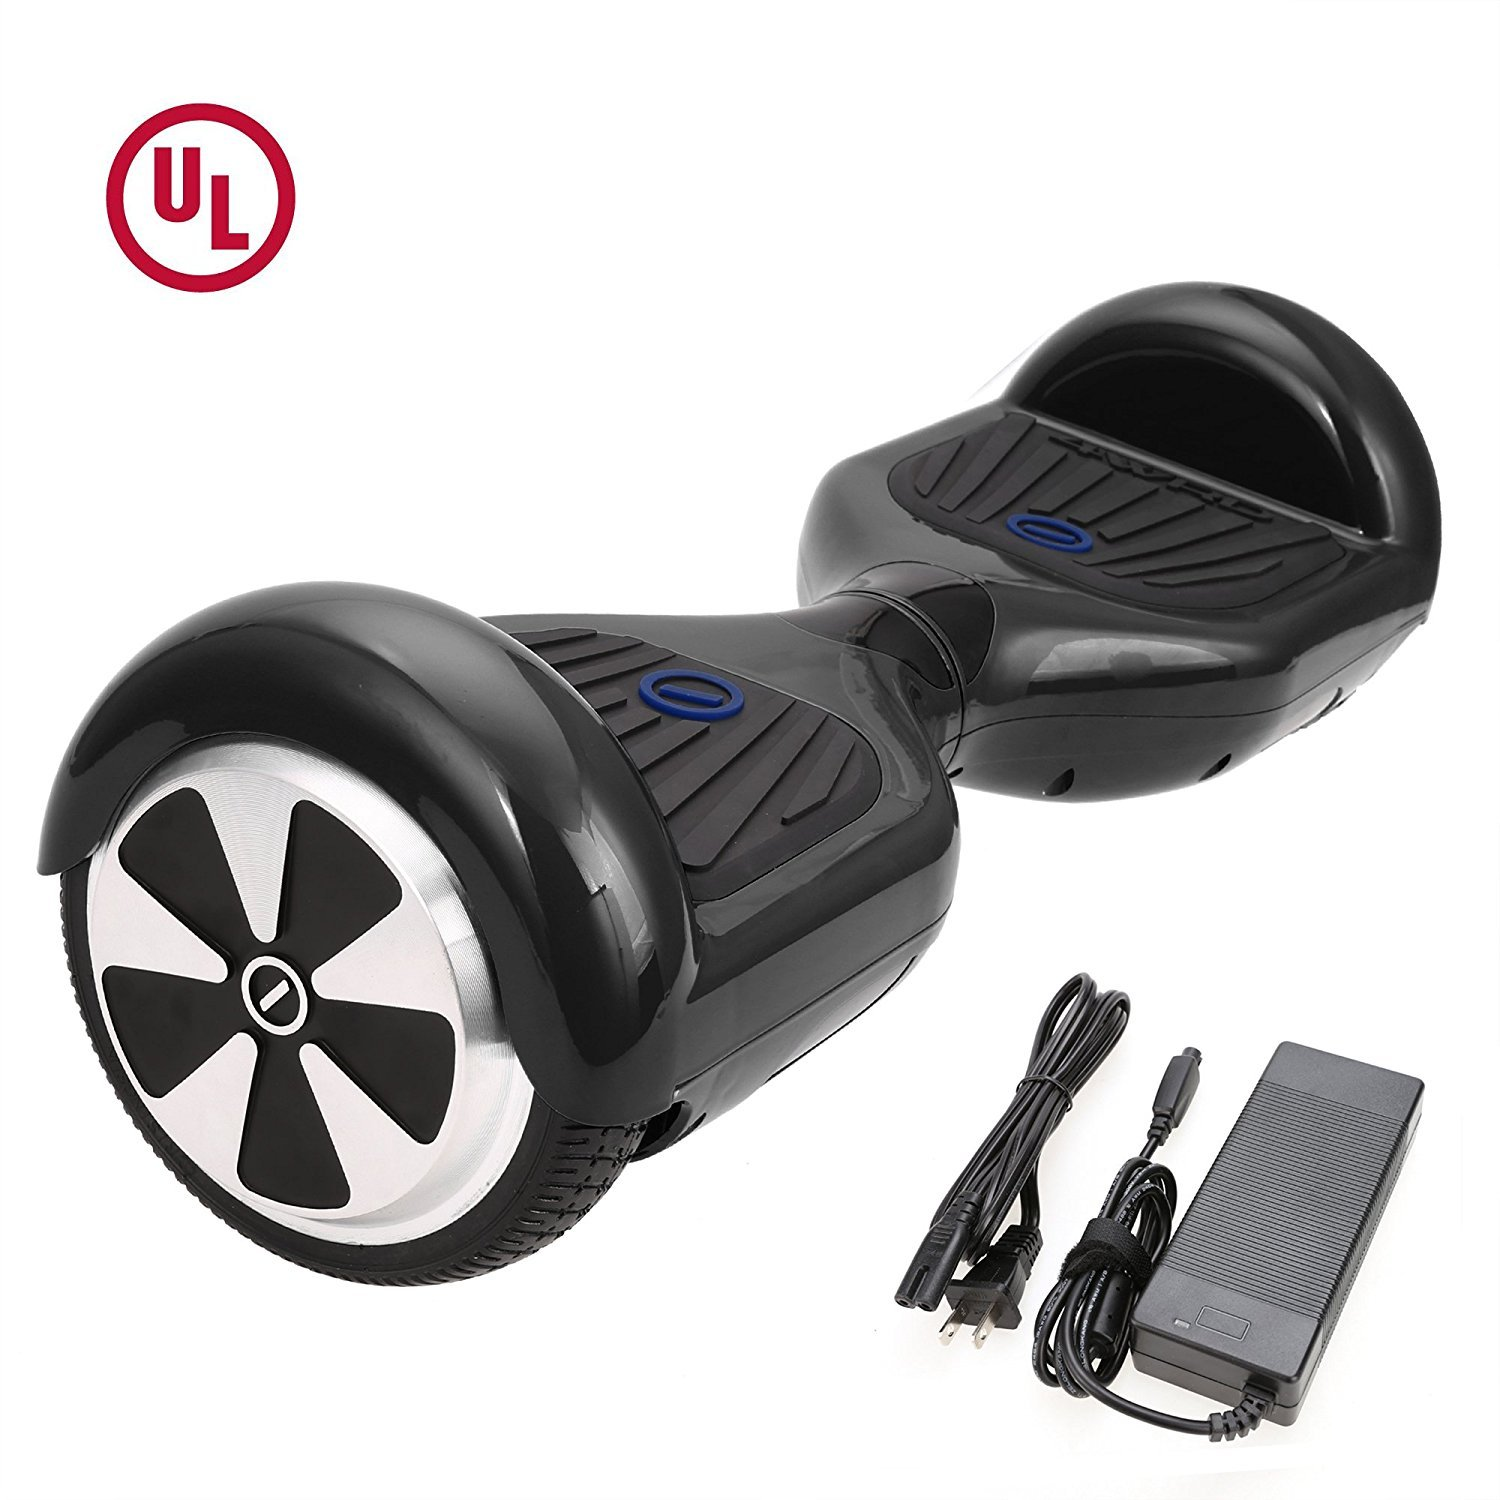 HIGH ROLLER 6.5'' Waterproof Hoverboard with Buffing Shell UL 2272 Certified Self-Balancing Scooter with LED lights , Black